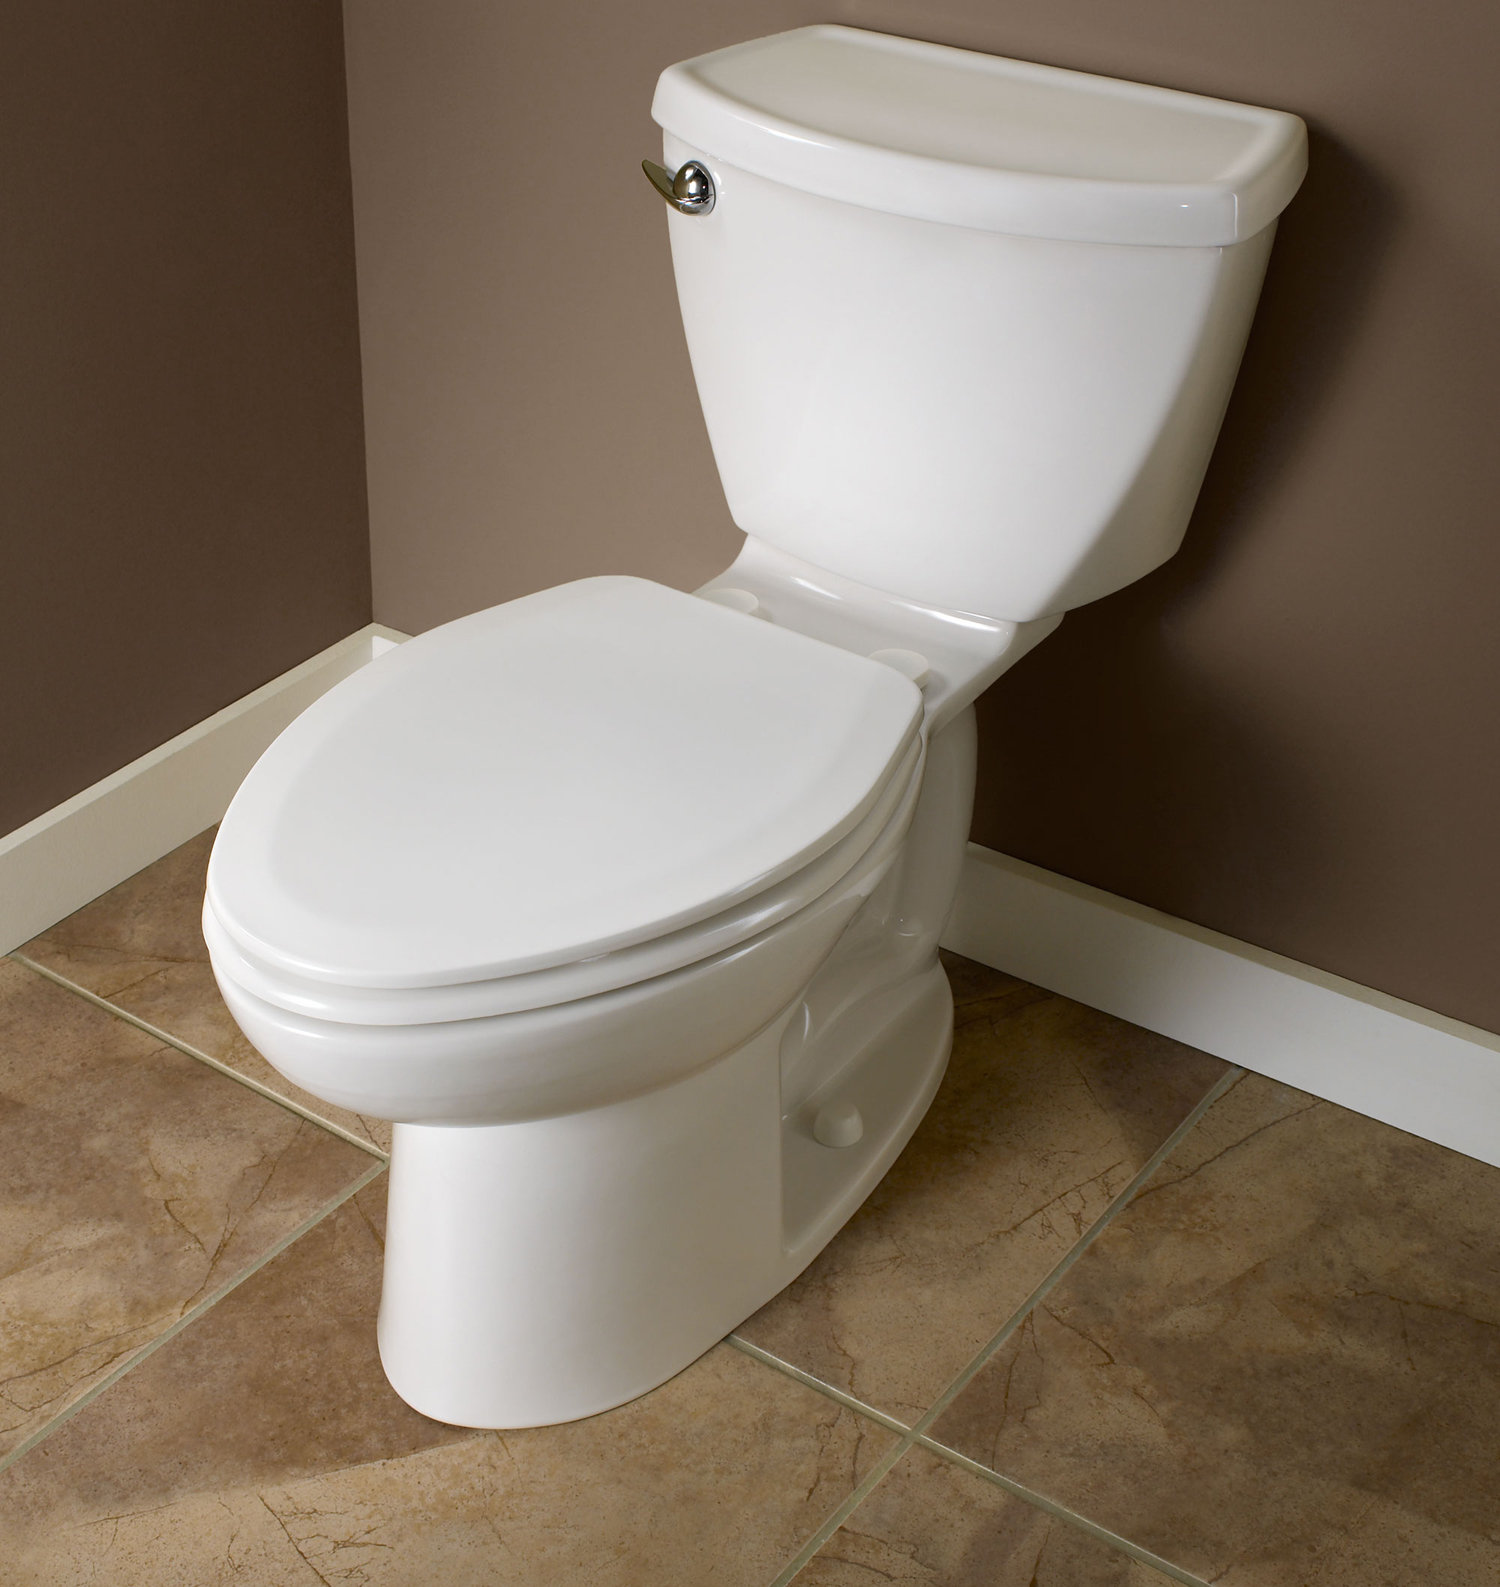 American Standard 5321 110 020 Everclean Elongated Toilet Seat With Slow Close Snap Off Hinges